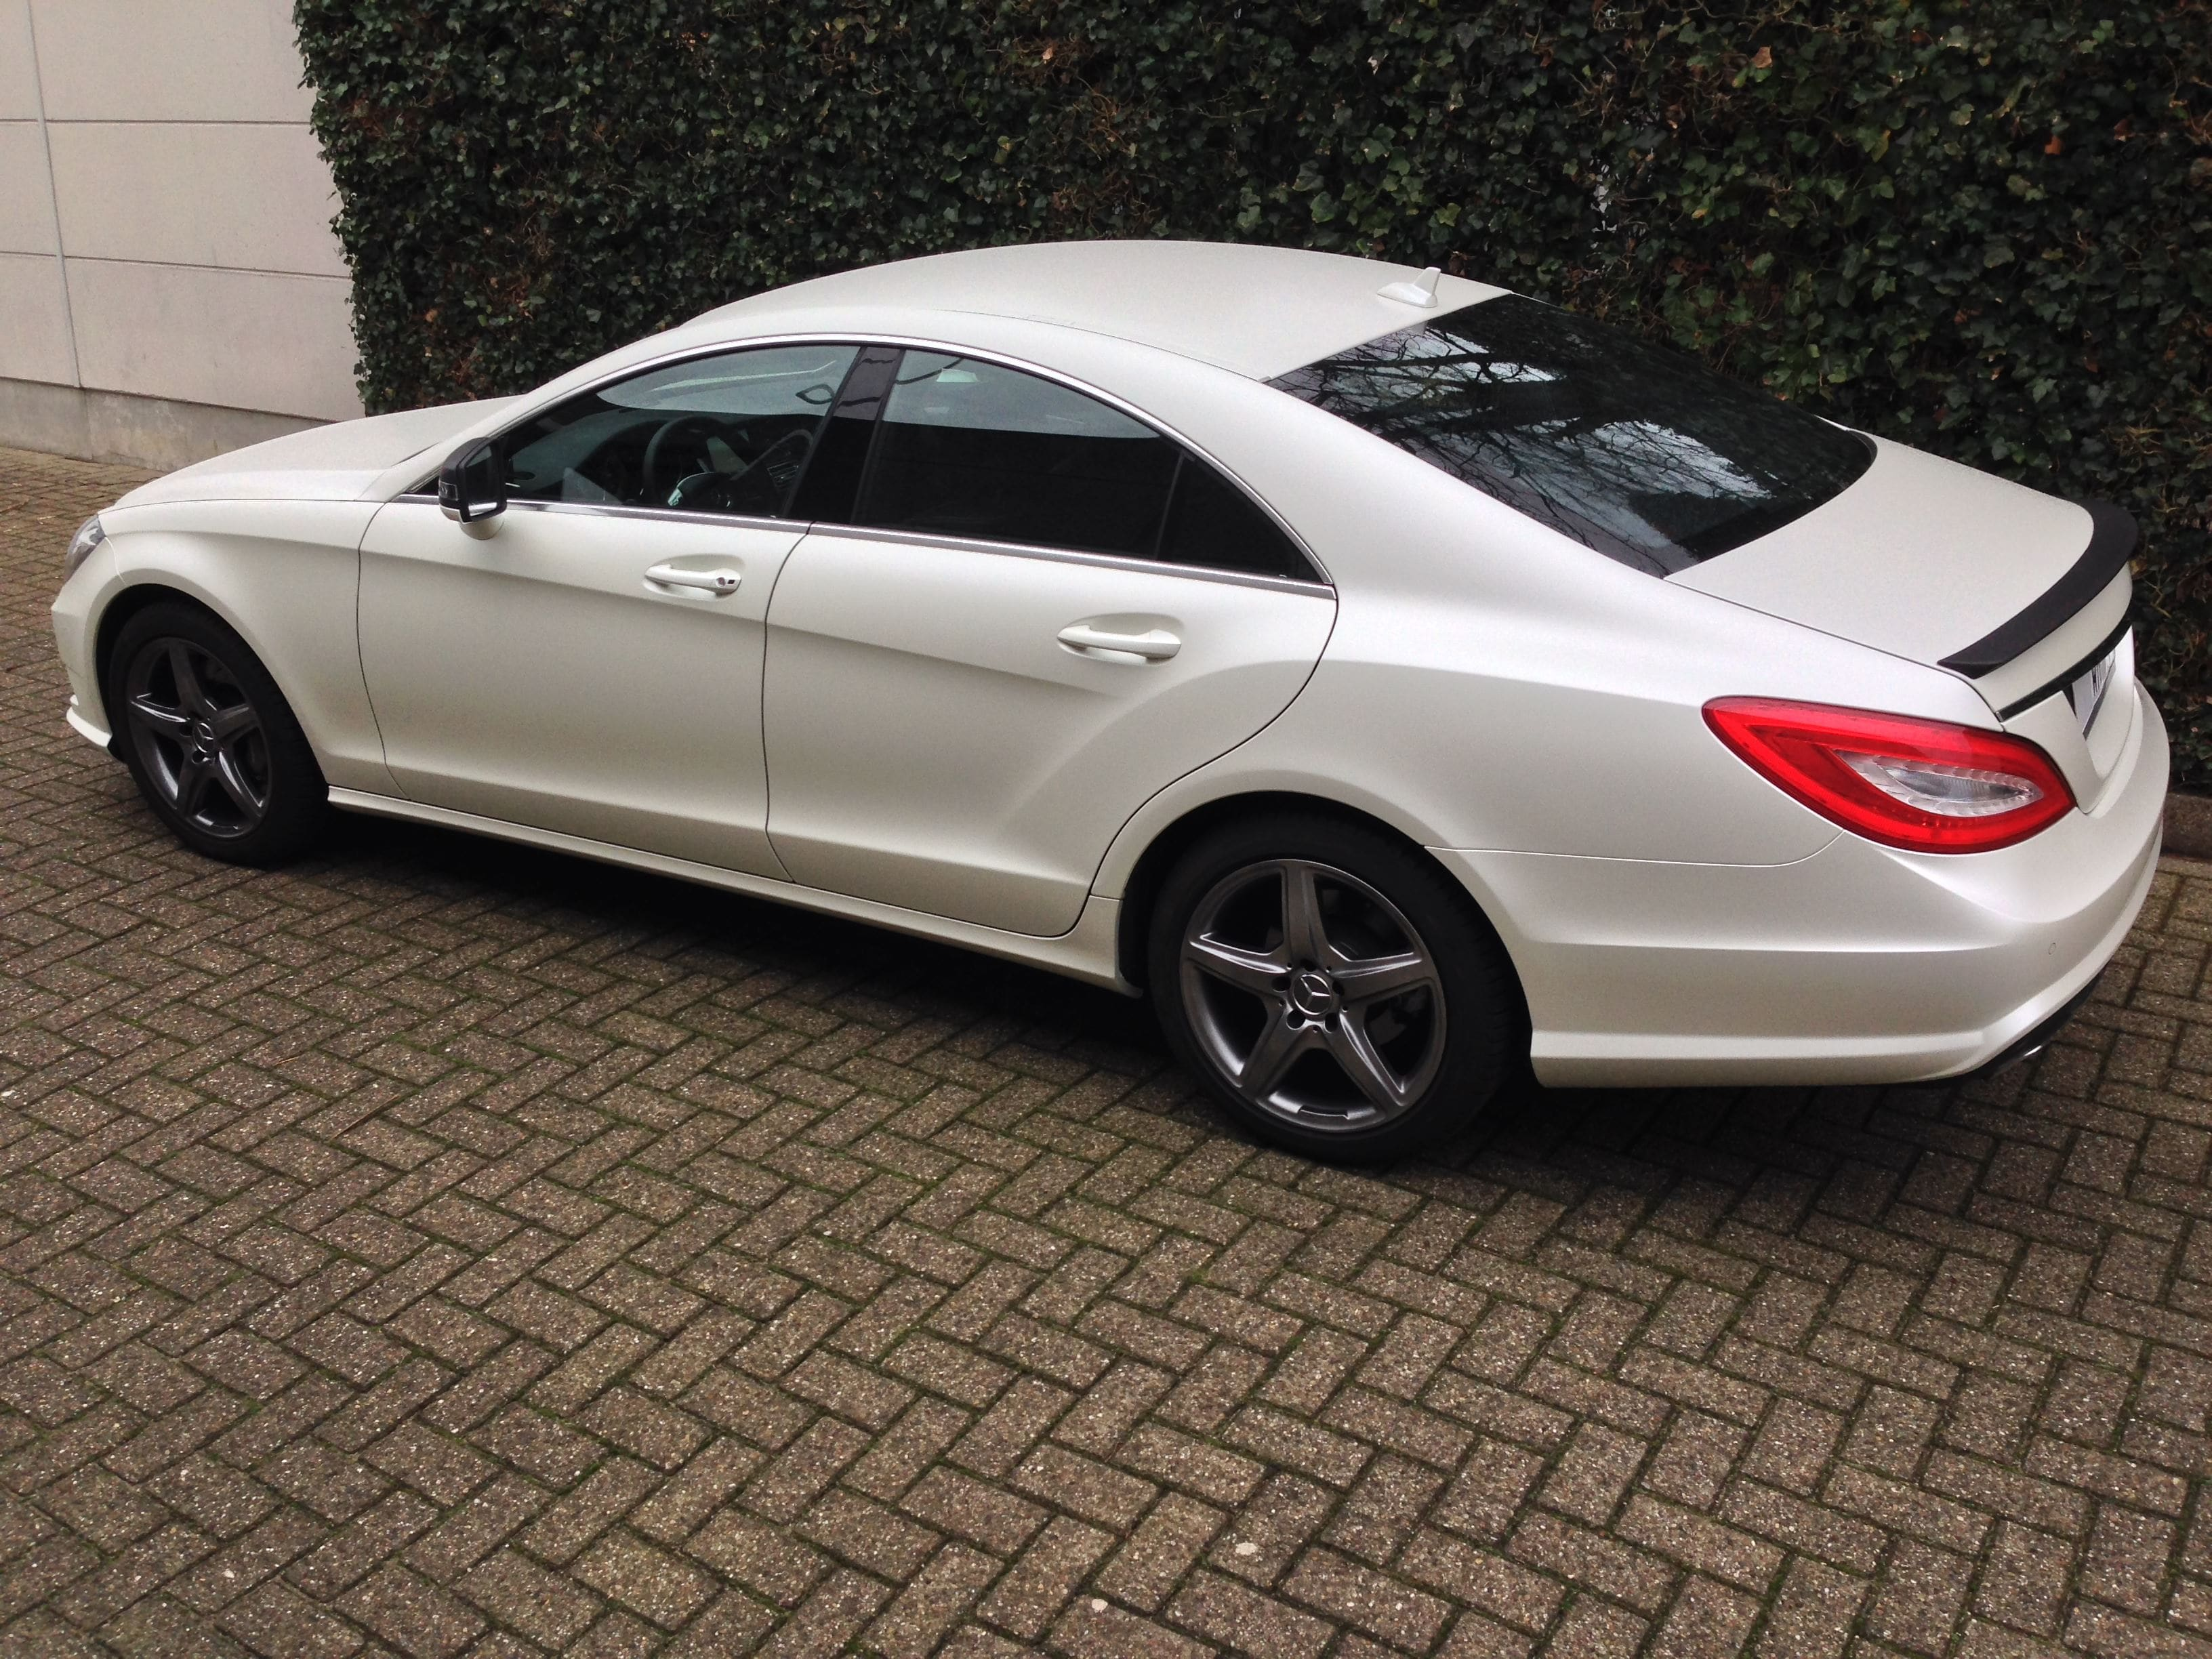 Mercedes CLS met White Satin Pearl Wrap, Carwrapping door Wrapmyride.nu Foto-nr:6217, ©2020